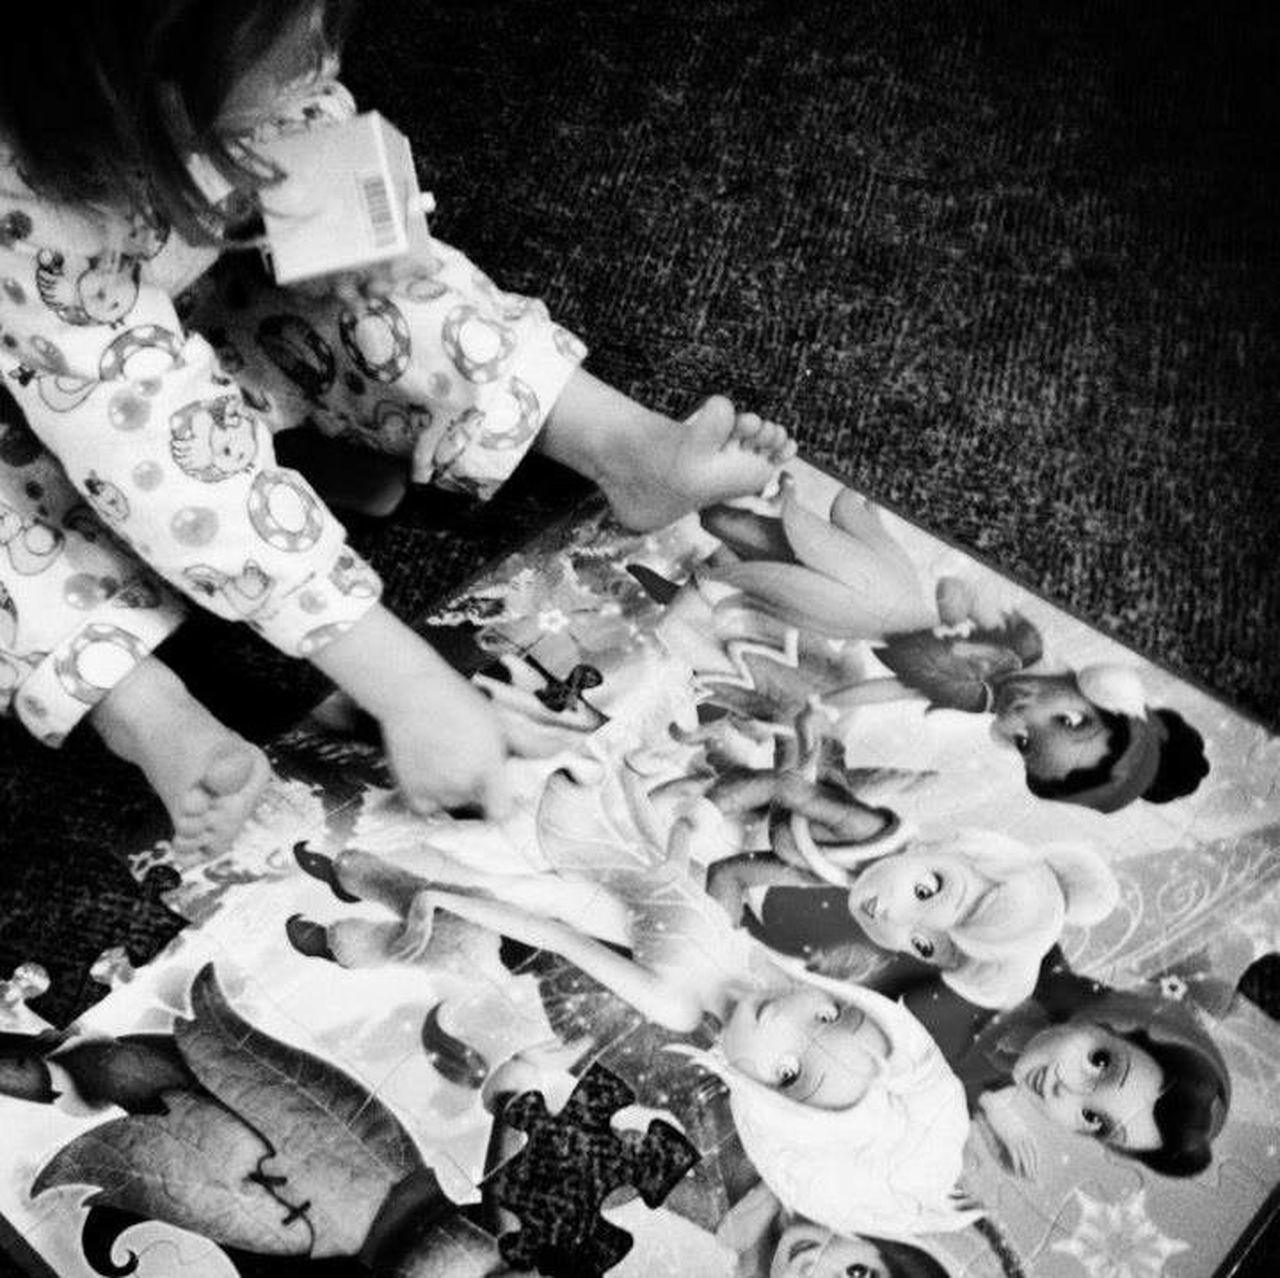 Kids Being Kids Kidsphotography Kids Playing Kids Kids Having Fun Puzzletime Puzzle  Playtime Cutiepie Littleprincess Blackandwhite DisneyPrincesses RePicture Growth